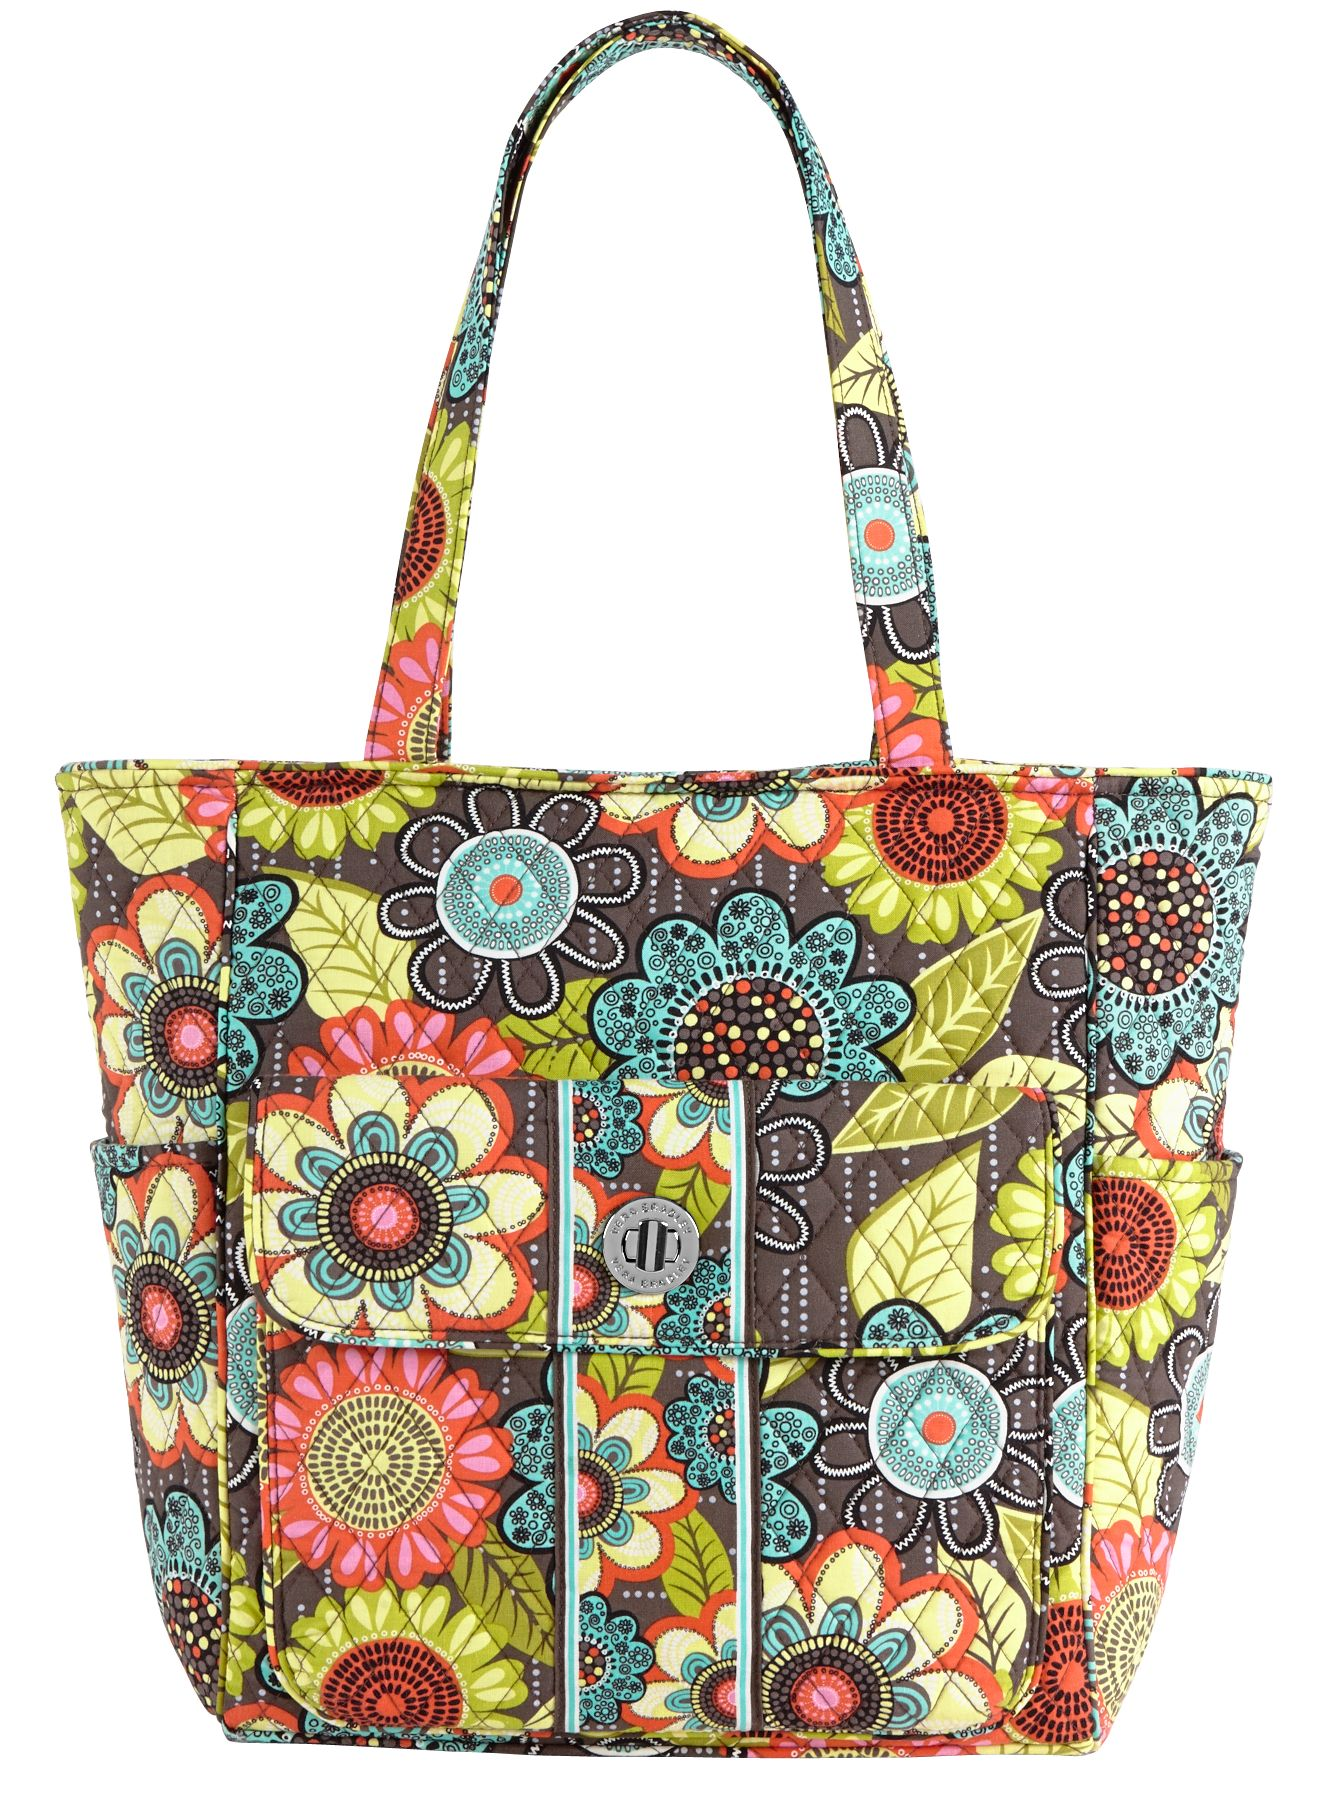 Vera Bradley Tablet Tote in Flower Shower